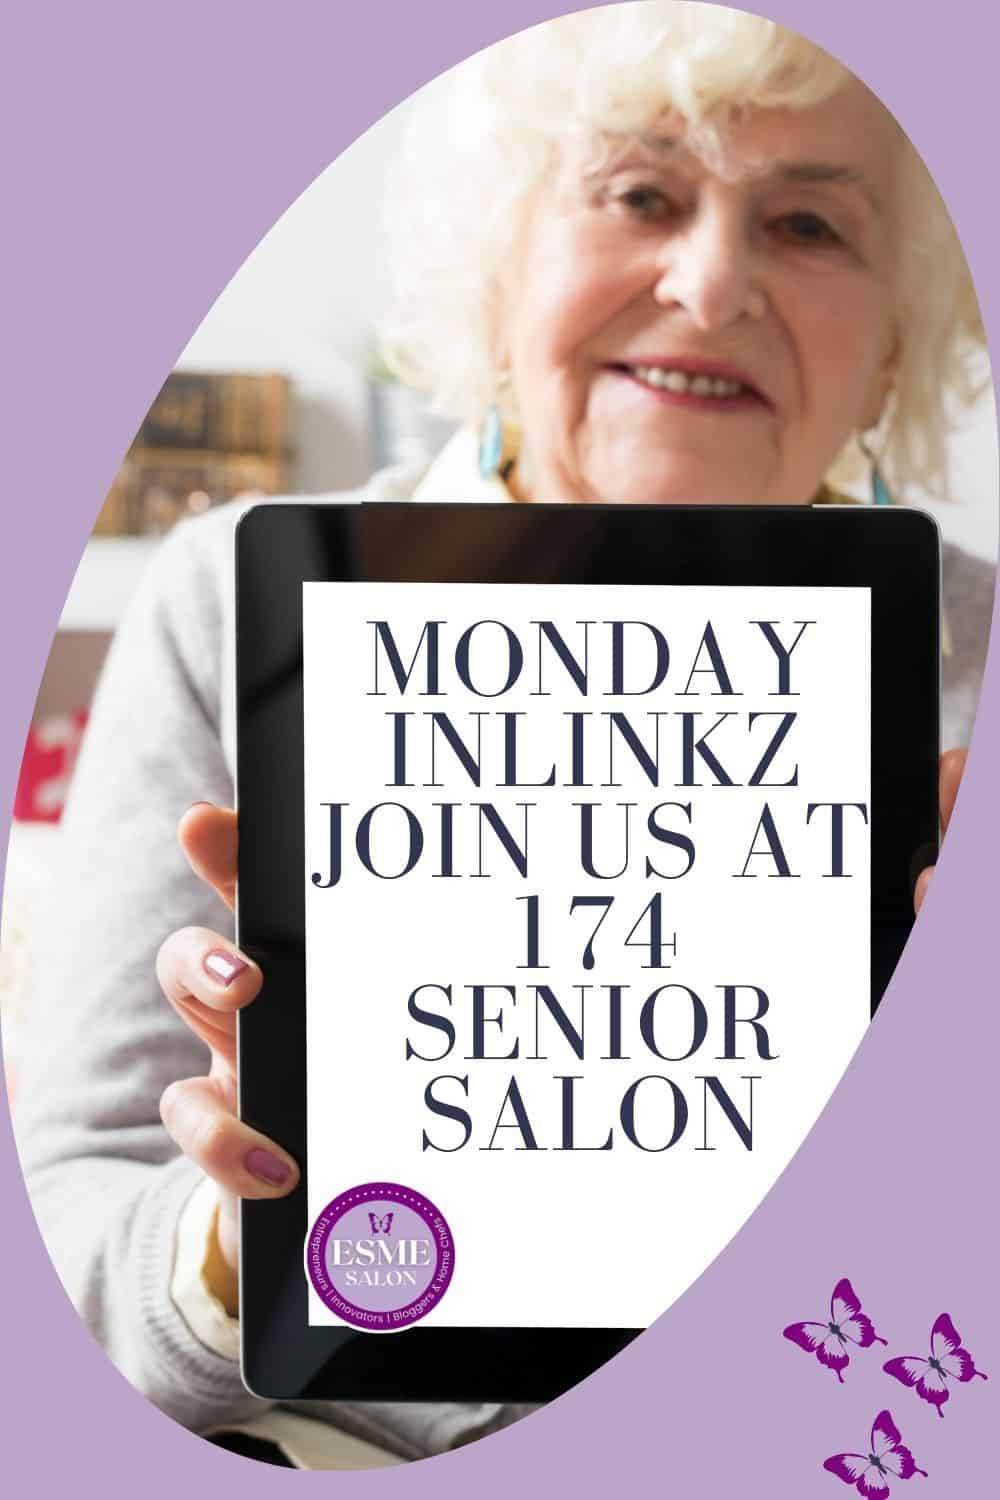 Grey haired women showing a tables with Monday InLinkz Join us at 174 Senior Salon